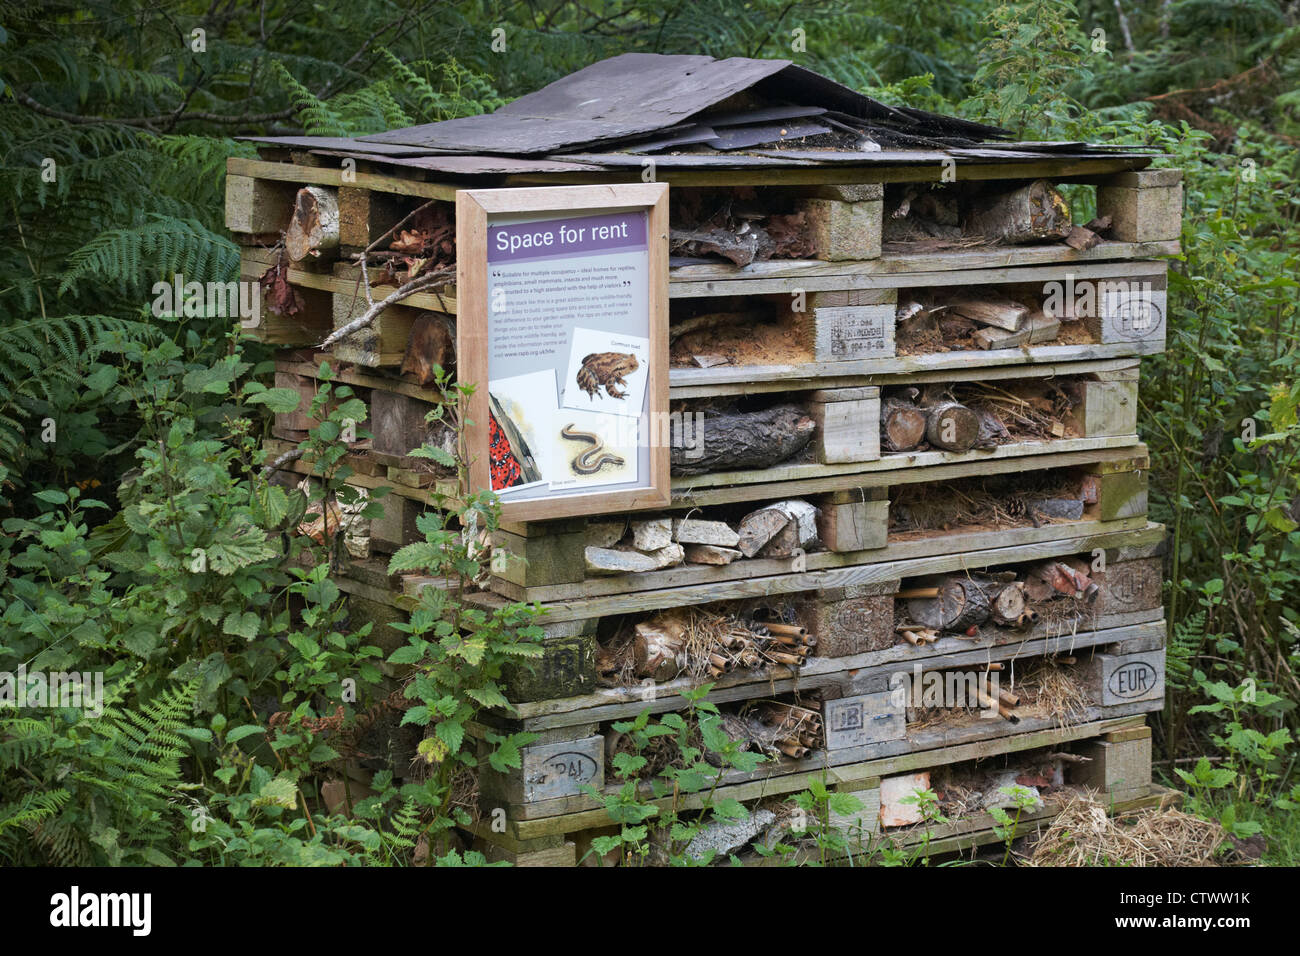 Space for rent - wildlife stack, a wildlife-friendly way to attract ...